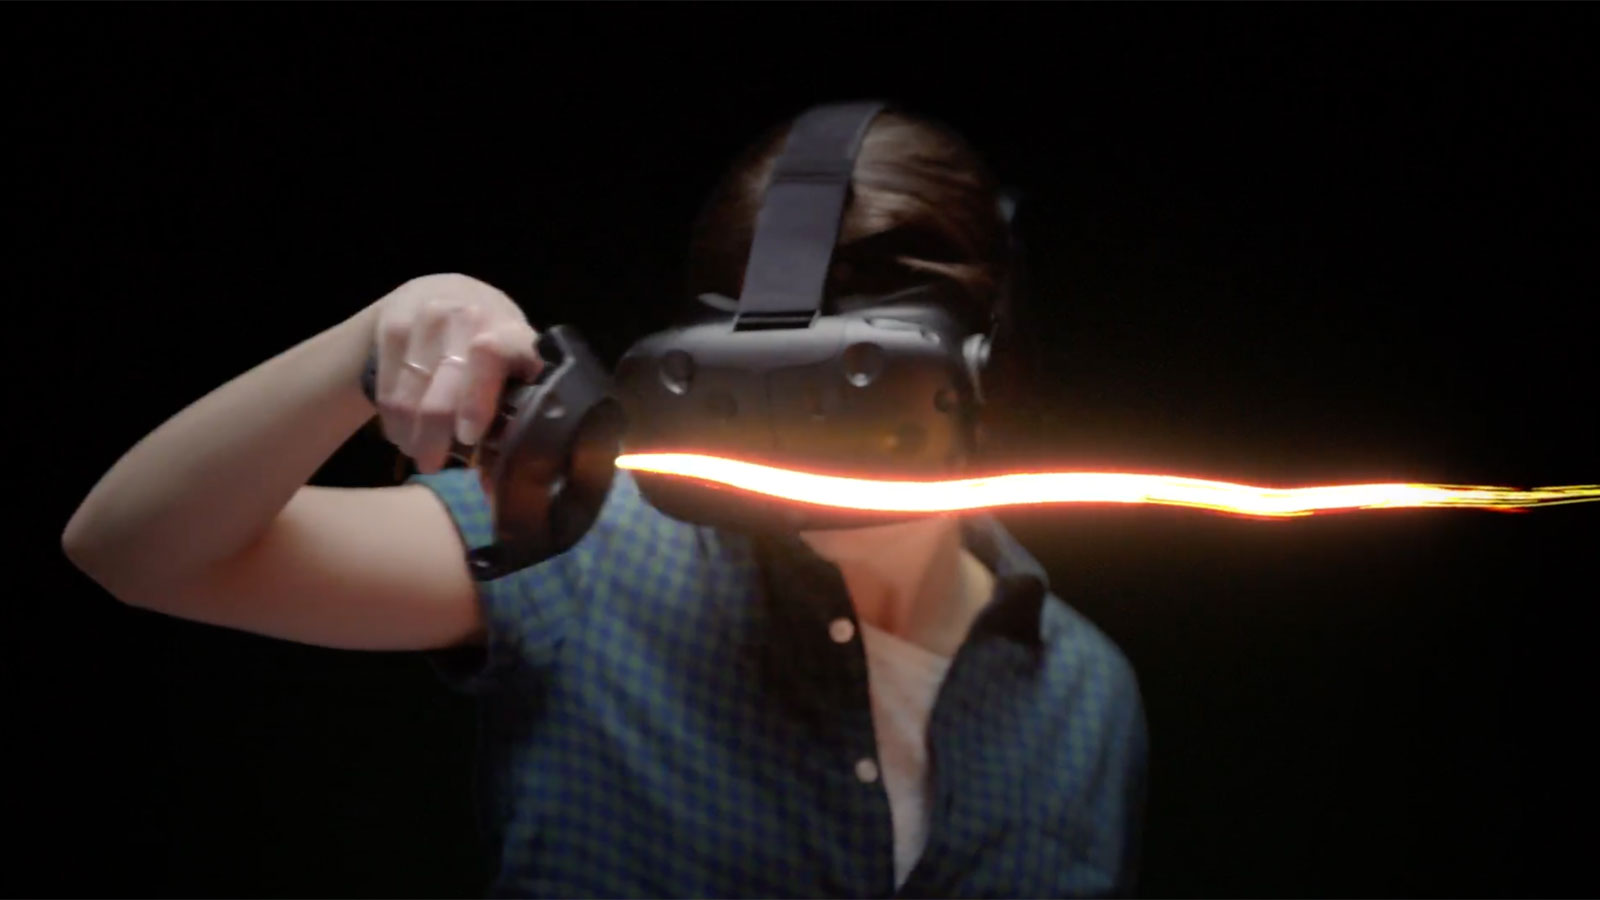 Google Tilt Brush – dipingere in 3D con la realtà virtuale [ARTICOLO + VIDEO]